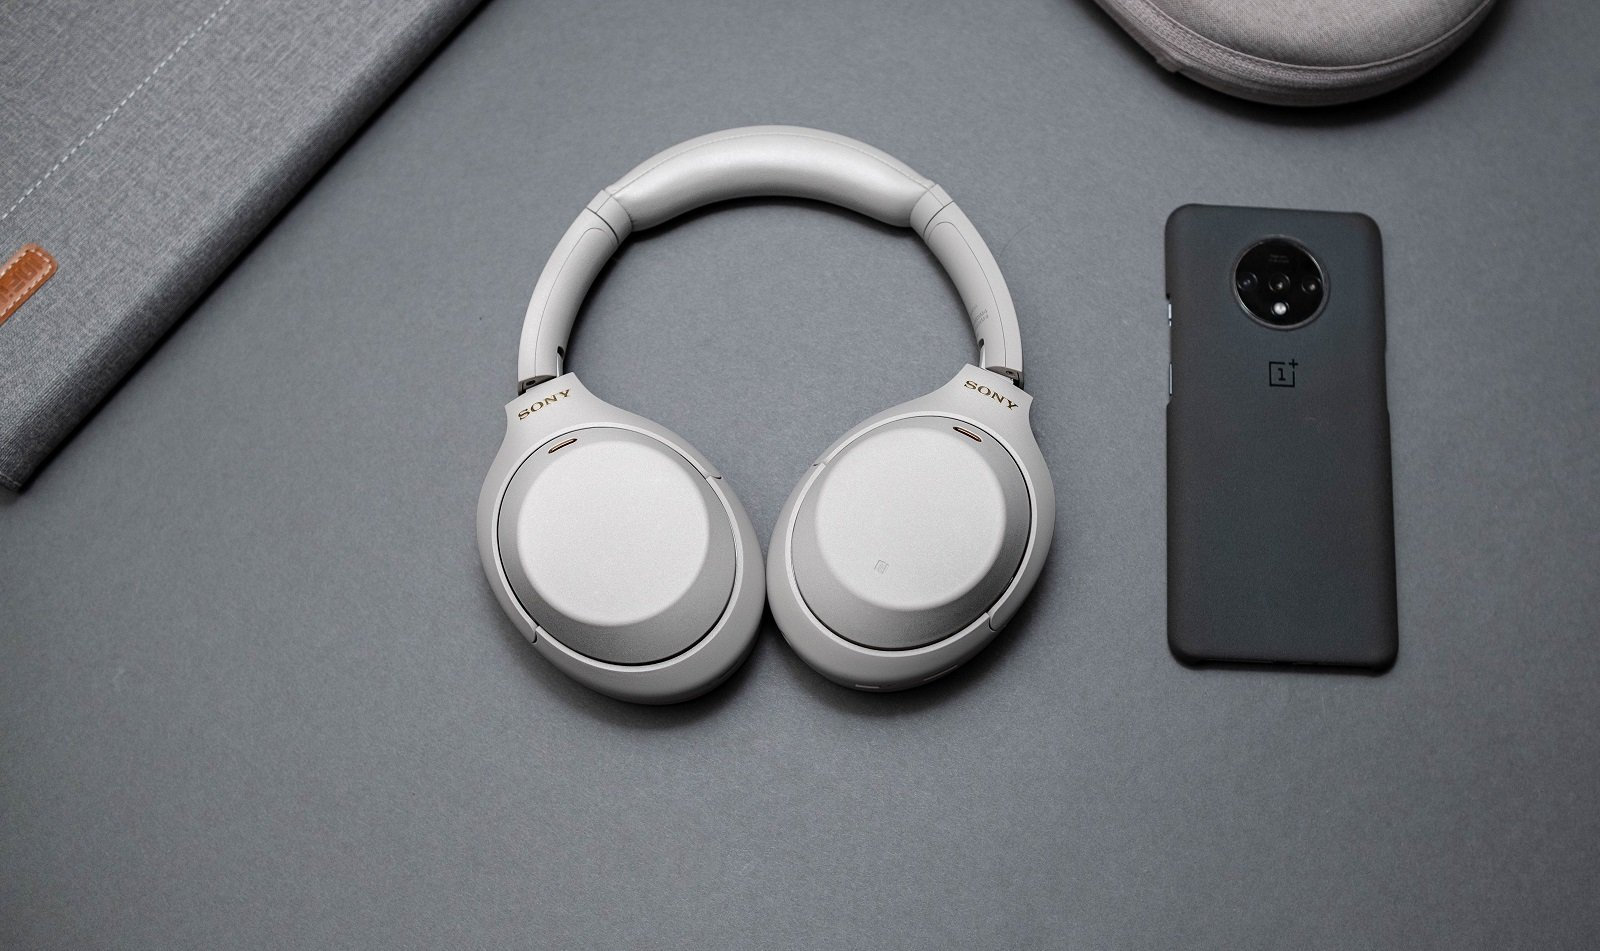 Sony WH-1000XM4 Review - Great noise cancelling, but how does it sound?